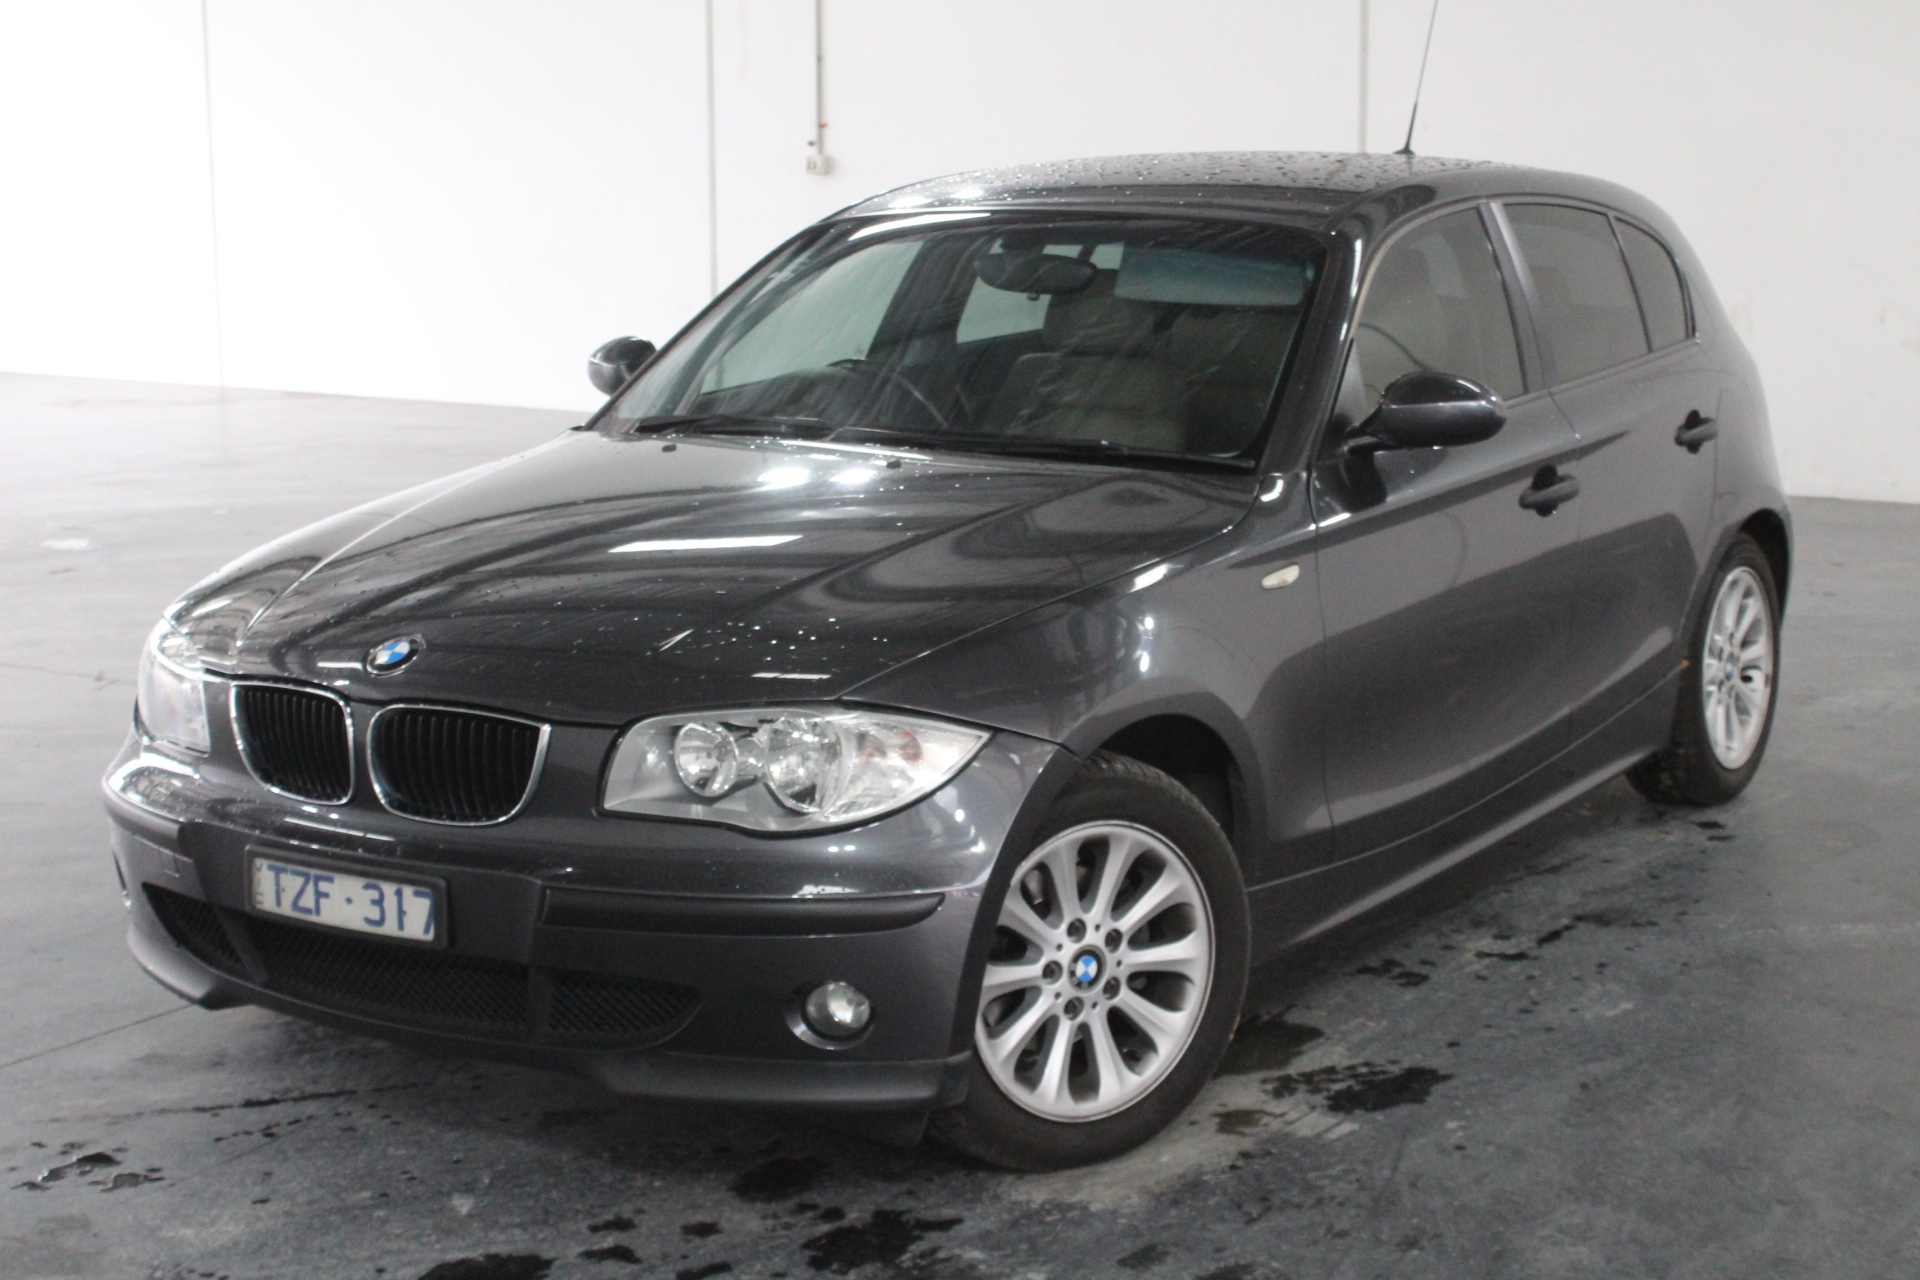 2006 BMW 1 18i E87 Automatic Hatchback